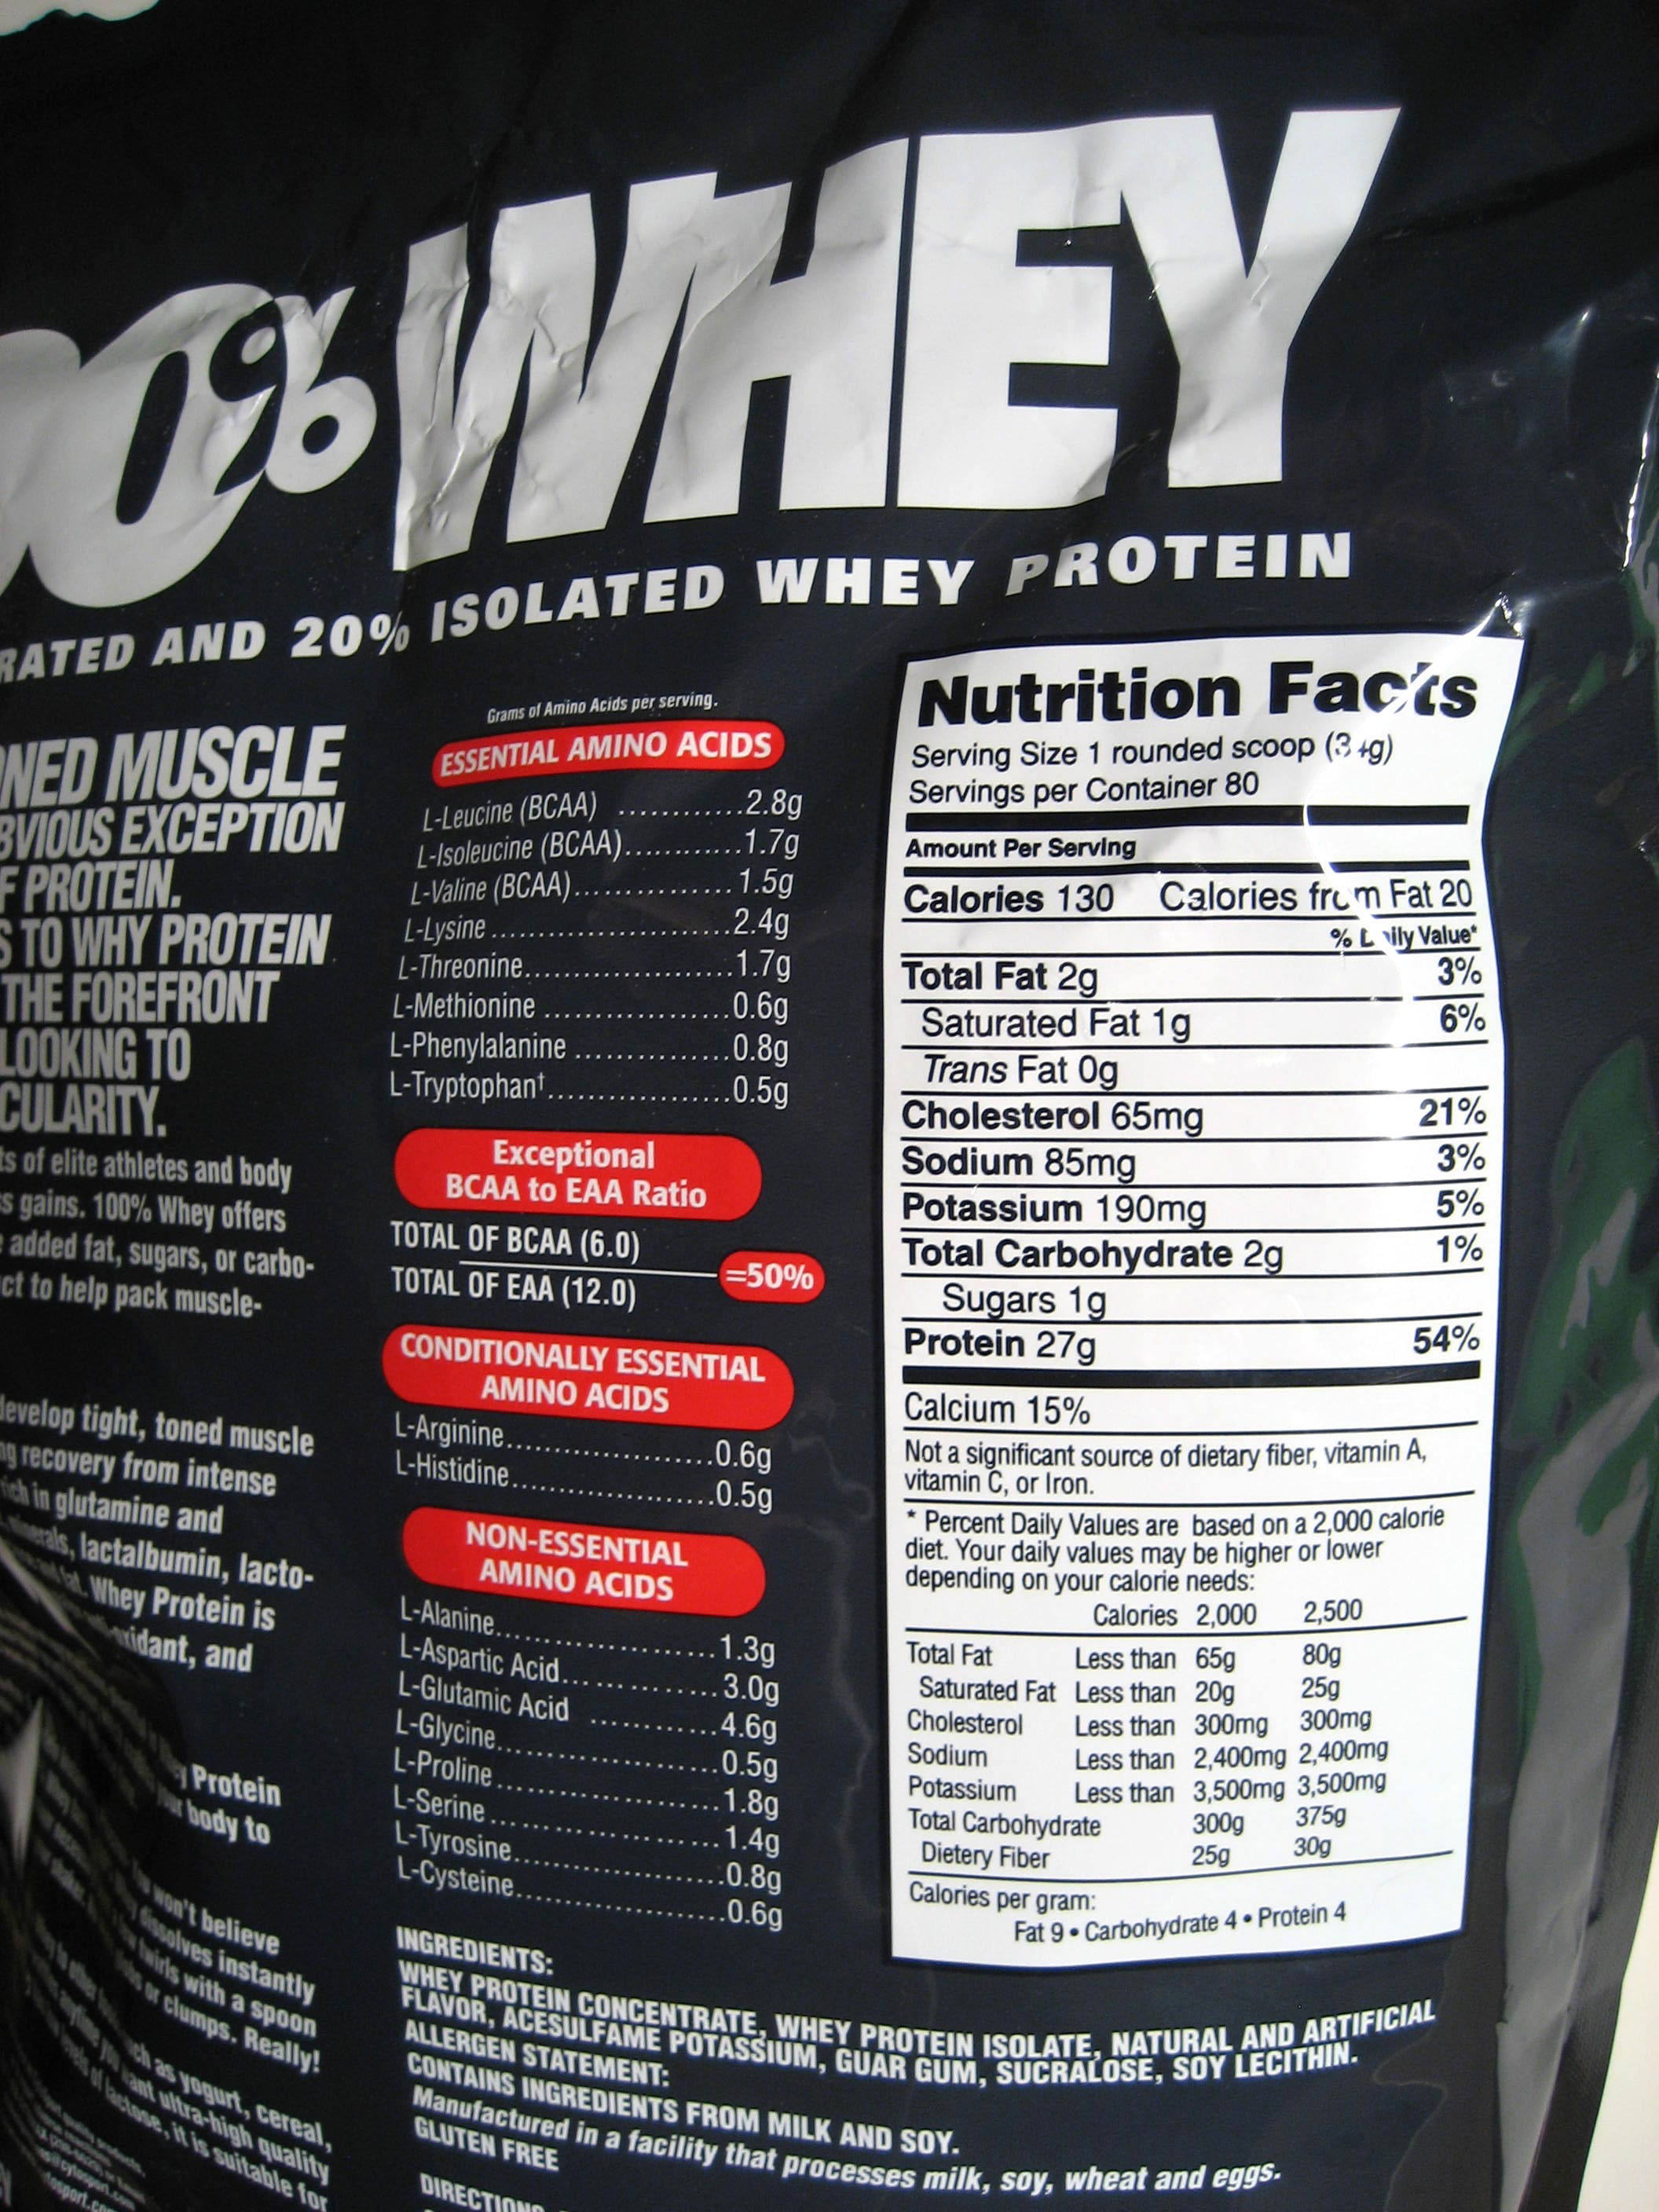 The Rundown On Costco Protein Powder The Modanonpsup38s Soup